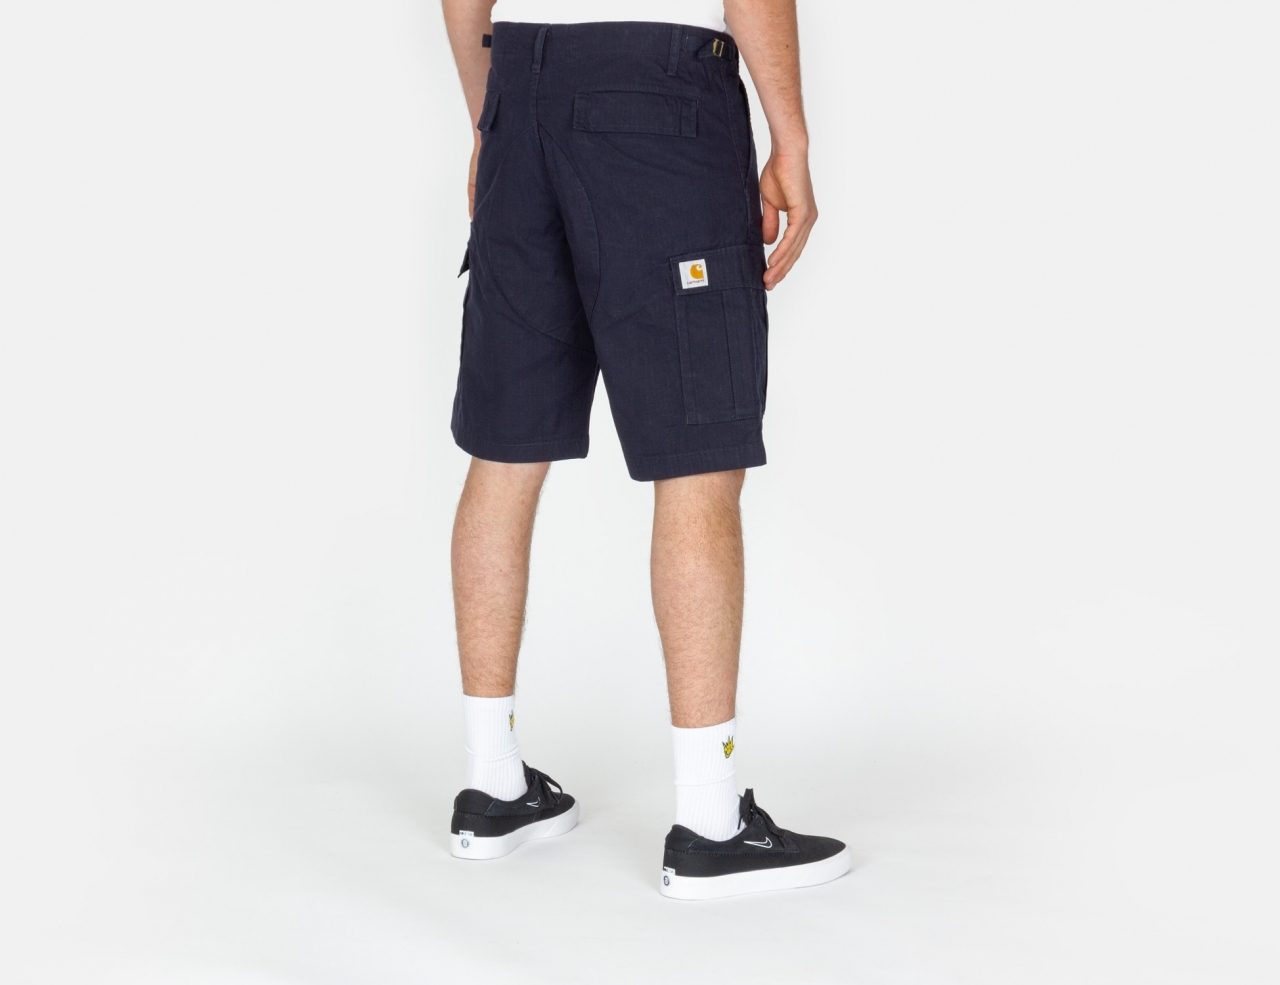 Carhartt WIP Aviation Cargo Shorts - Dark Navy rinsed